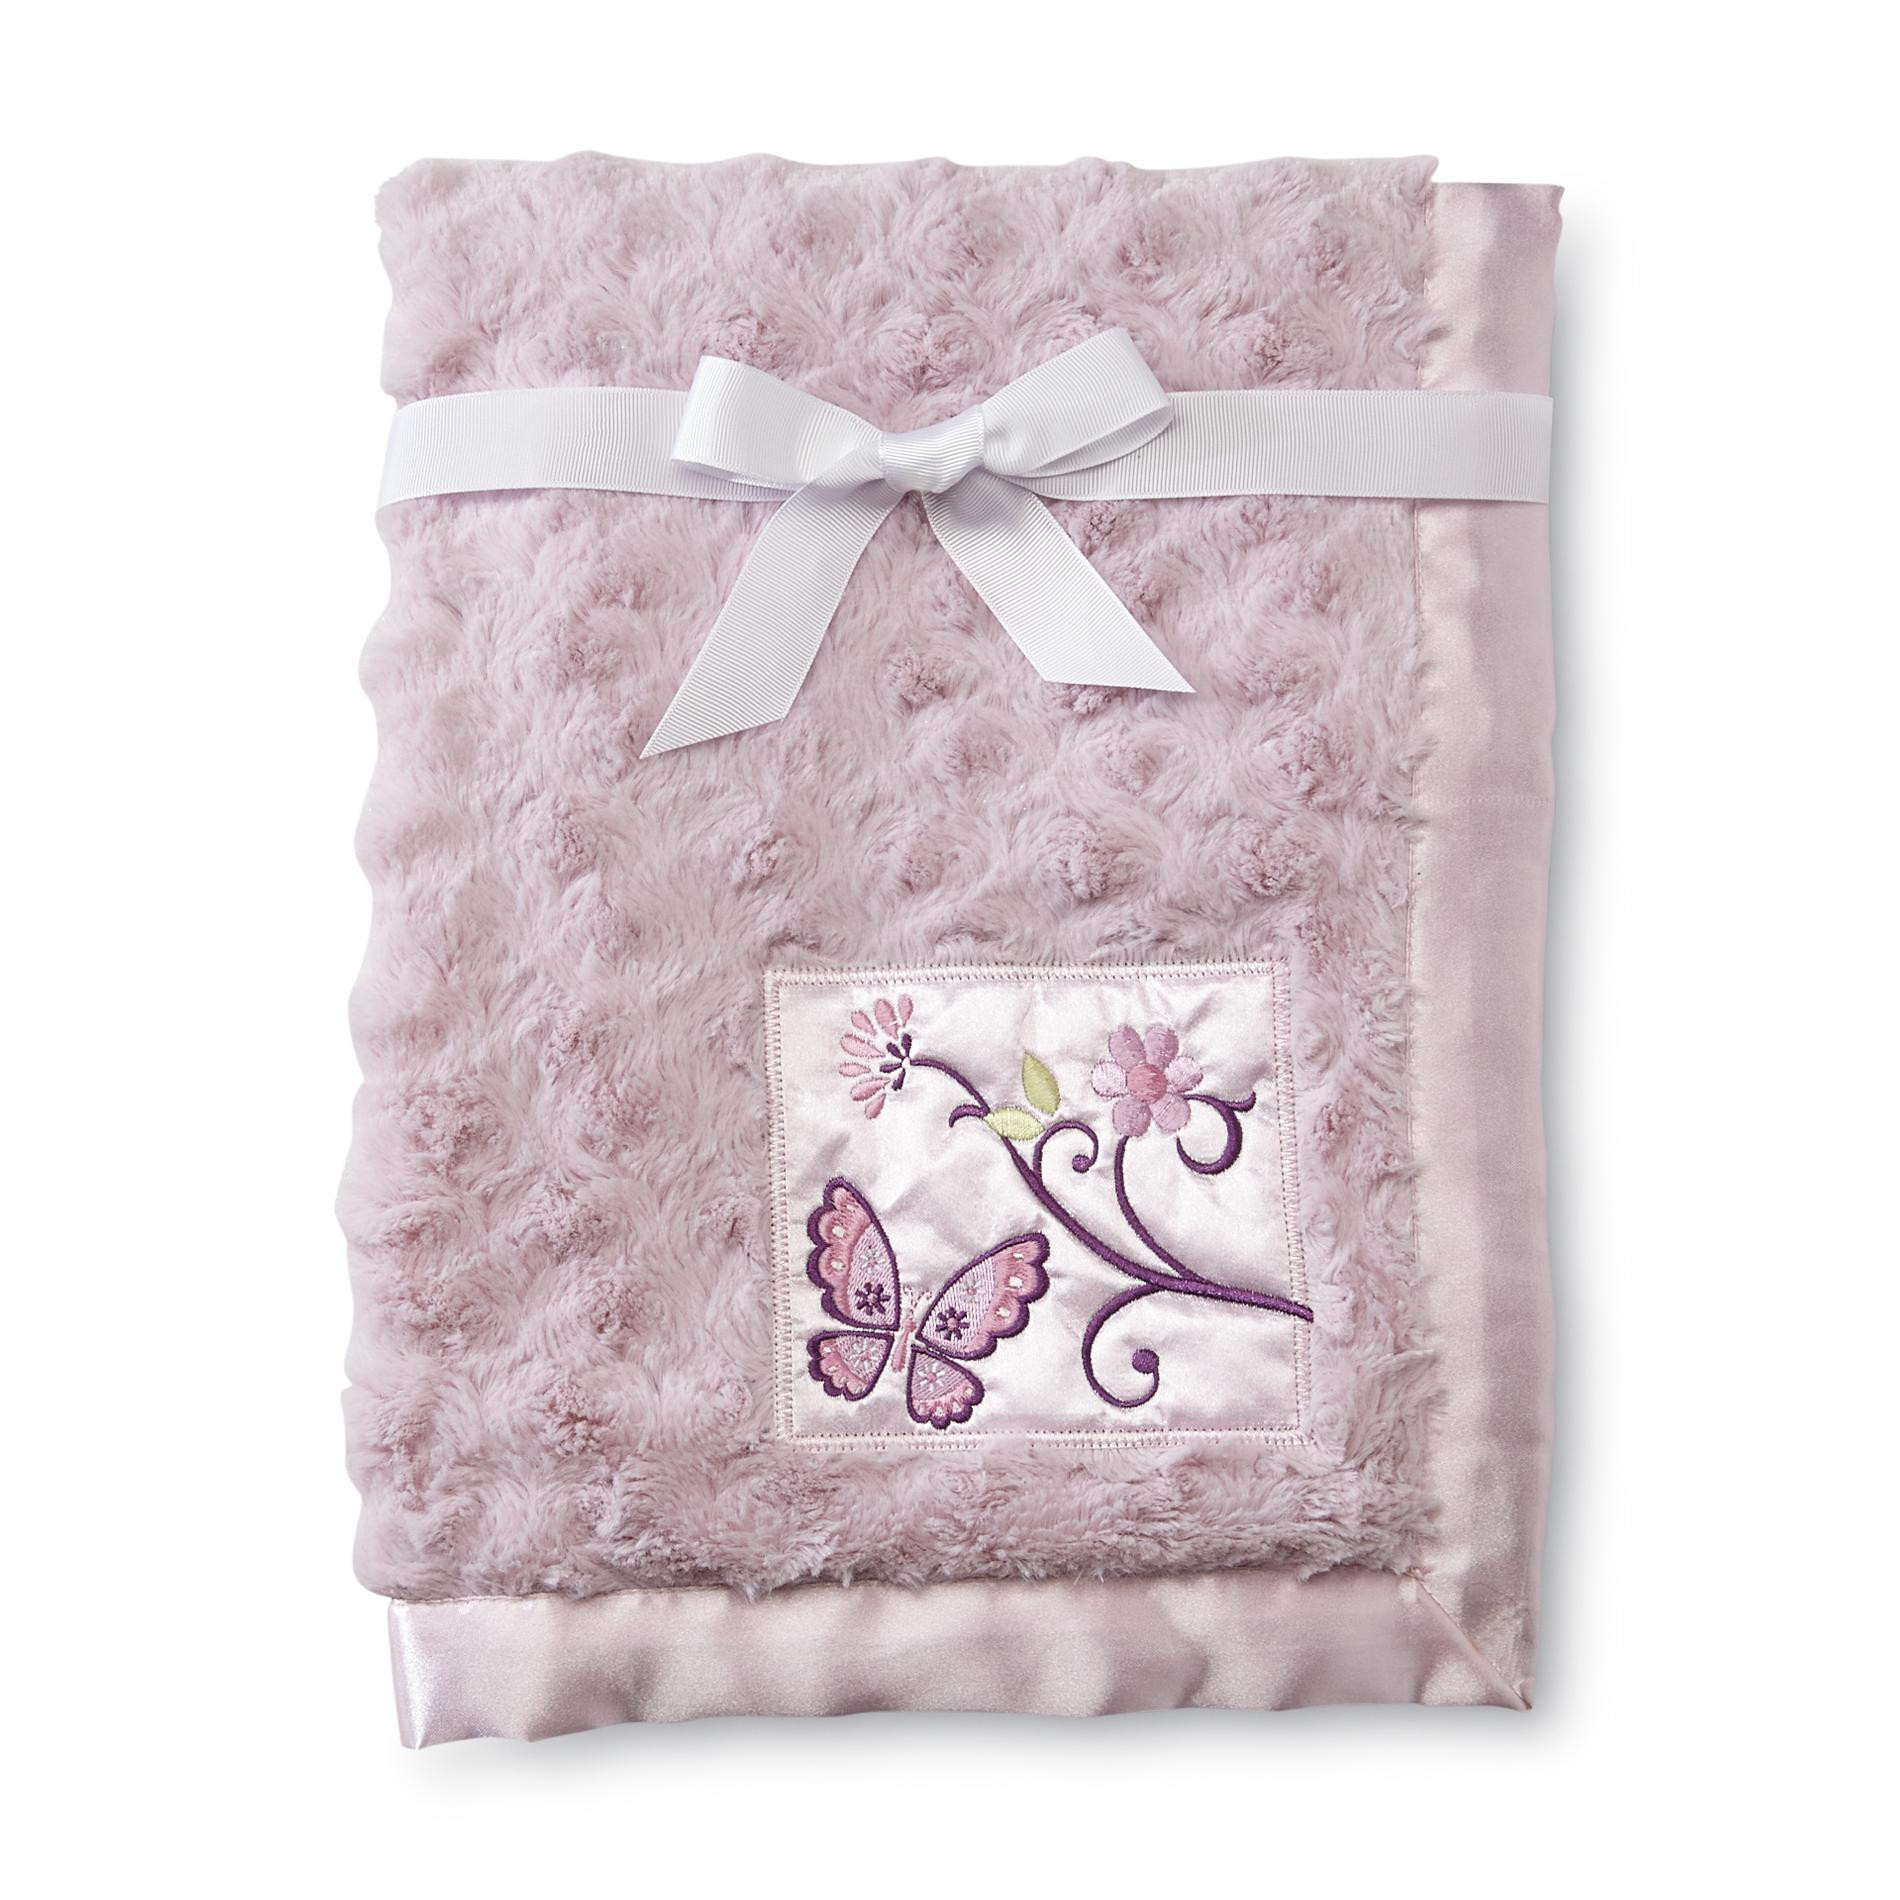 Butterfly Baby Blanket Awesome Nojo Infant Girl S Plush & Satin Blanket butterfly Blossoms Of Amazing 43 Ideas butterfly Baby Blanket